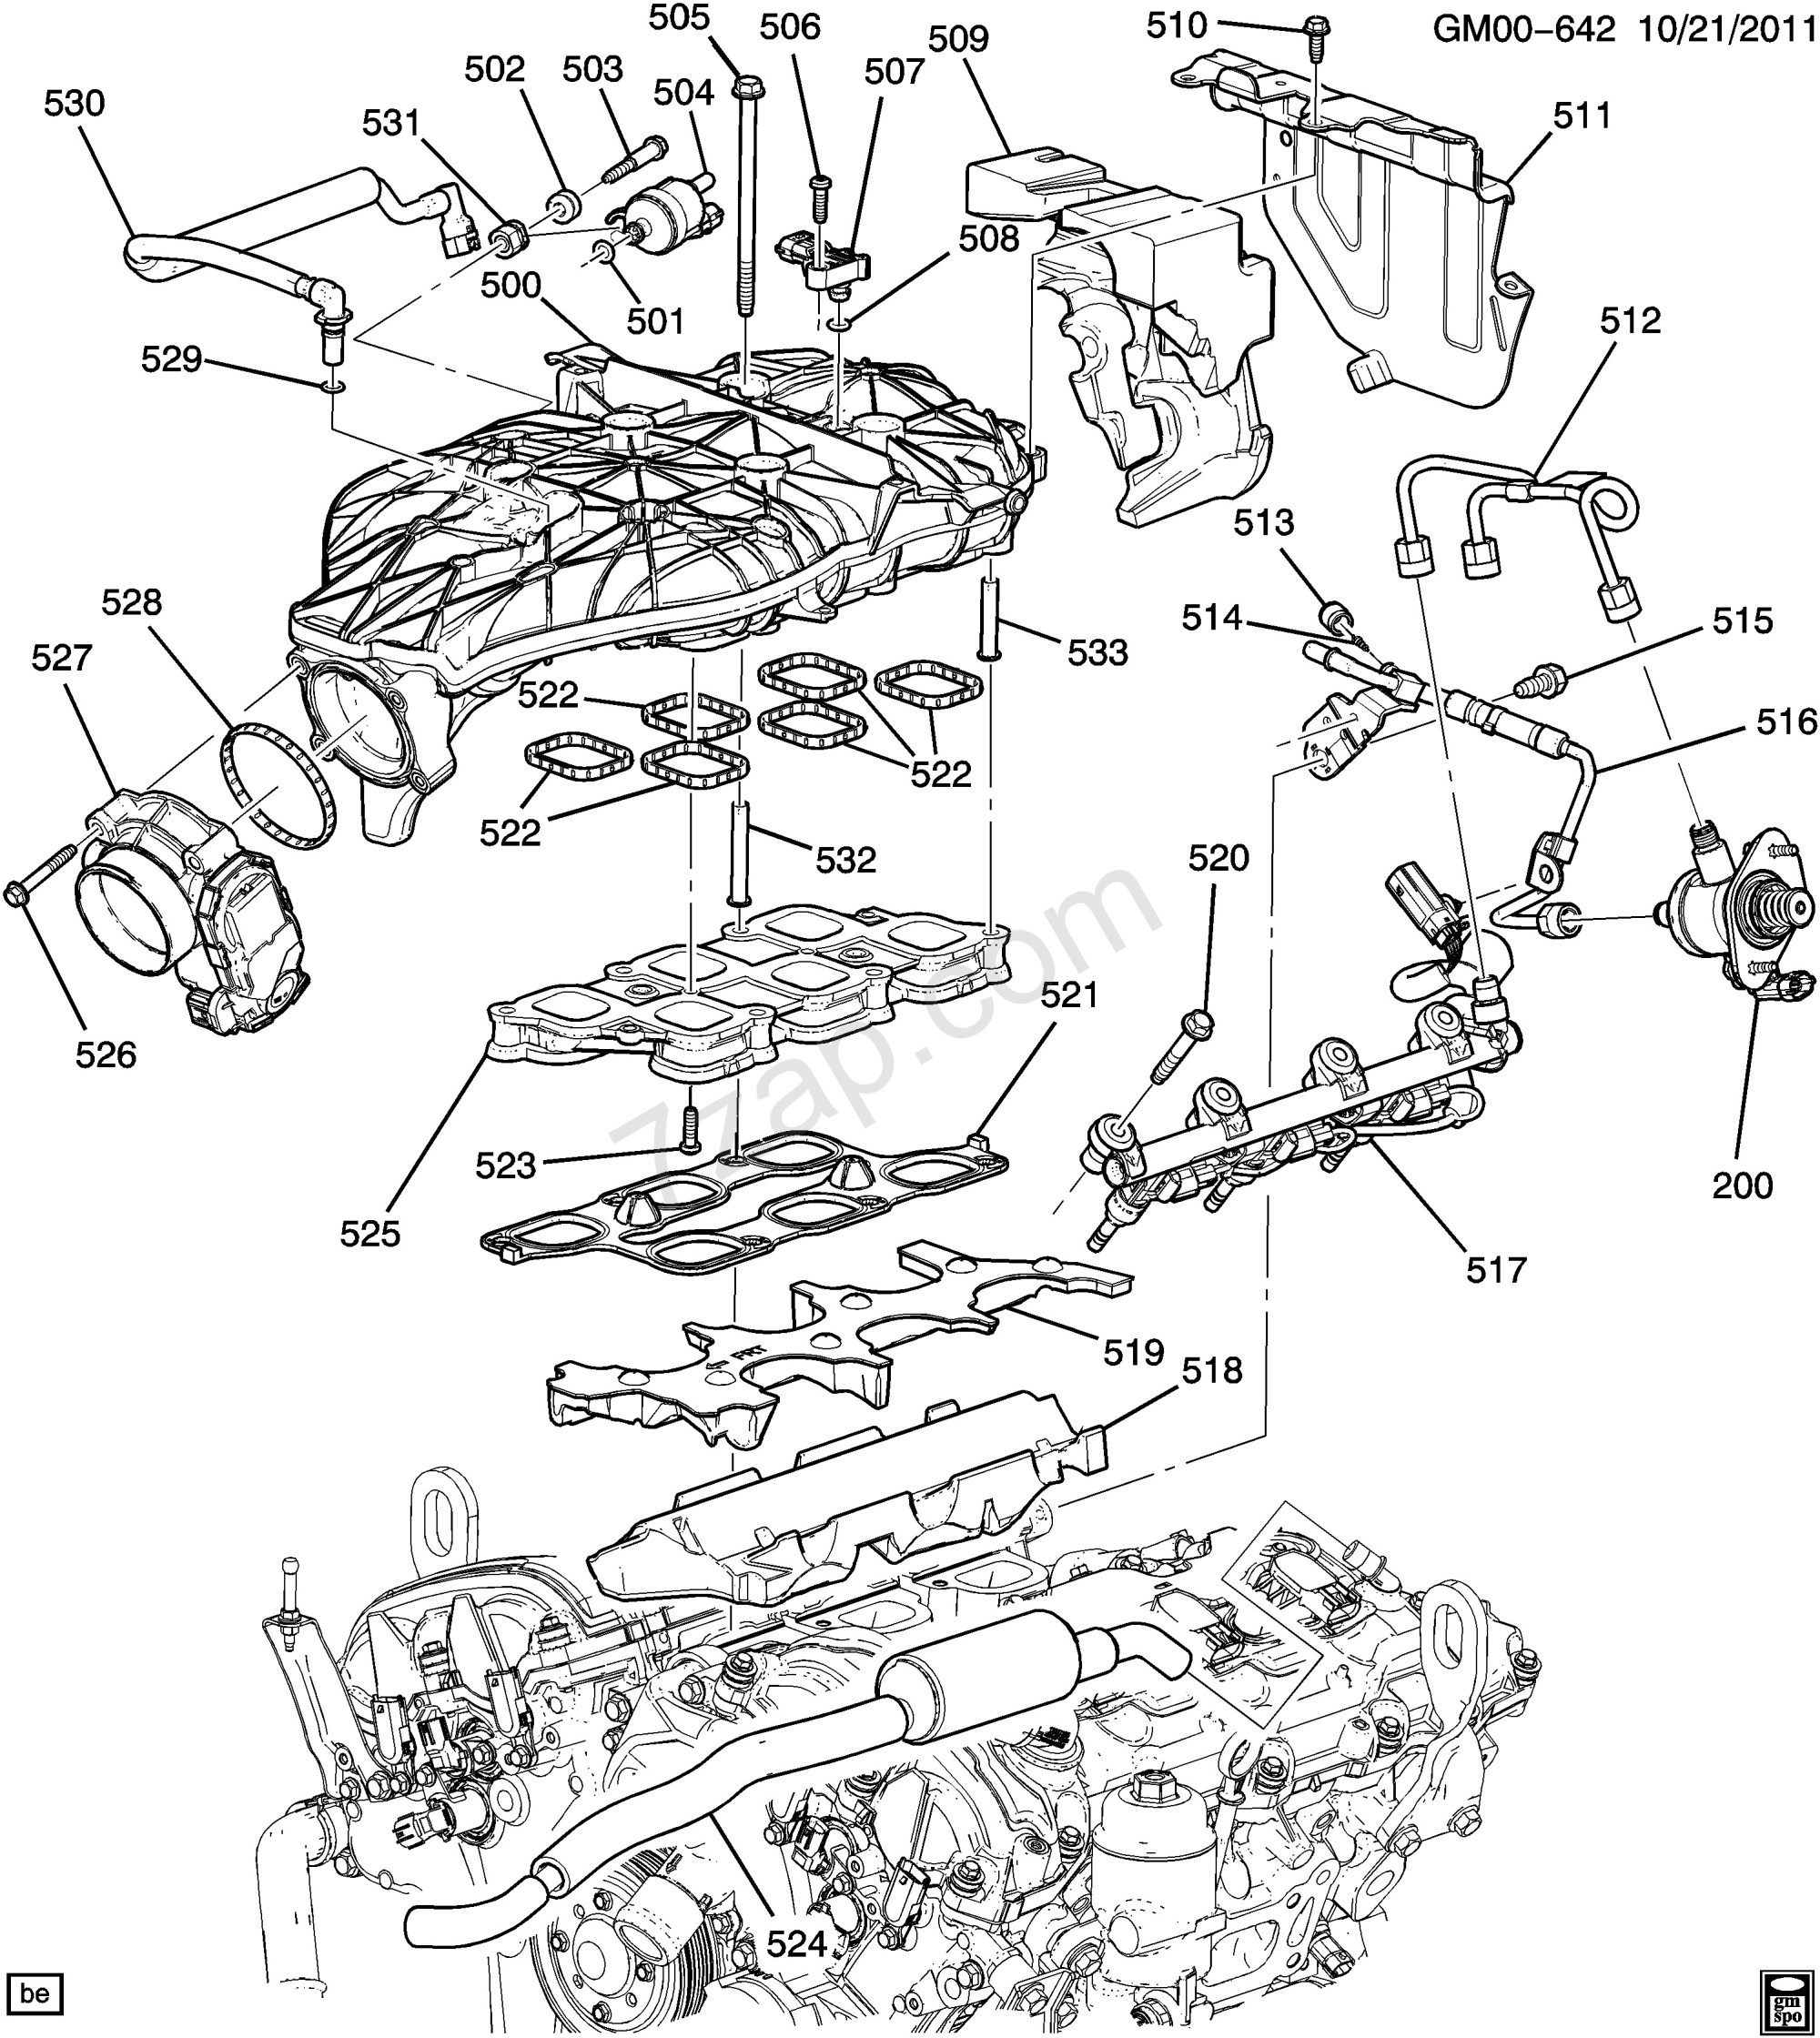 hight resolution of dodge 3 5 liter engine diagram wiring diagram expert 3 8 liter dodge engine diagram